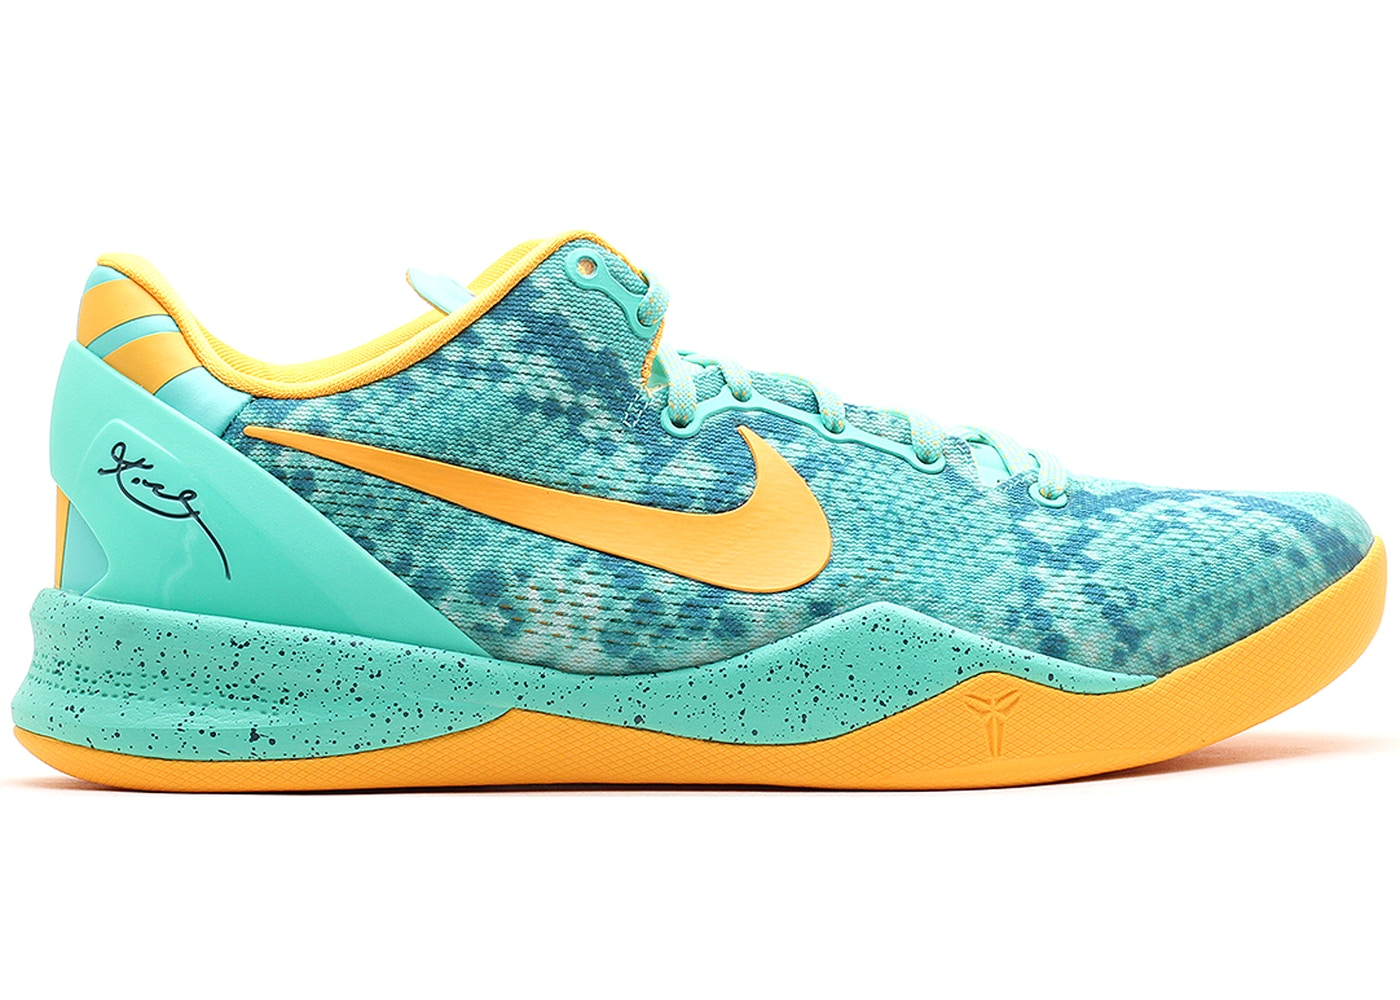 quality design 47837 7ace8 Buy Nike Kobe 8 Shoes   Deadstock Sneakers